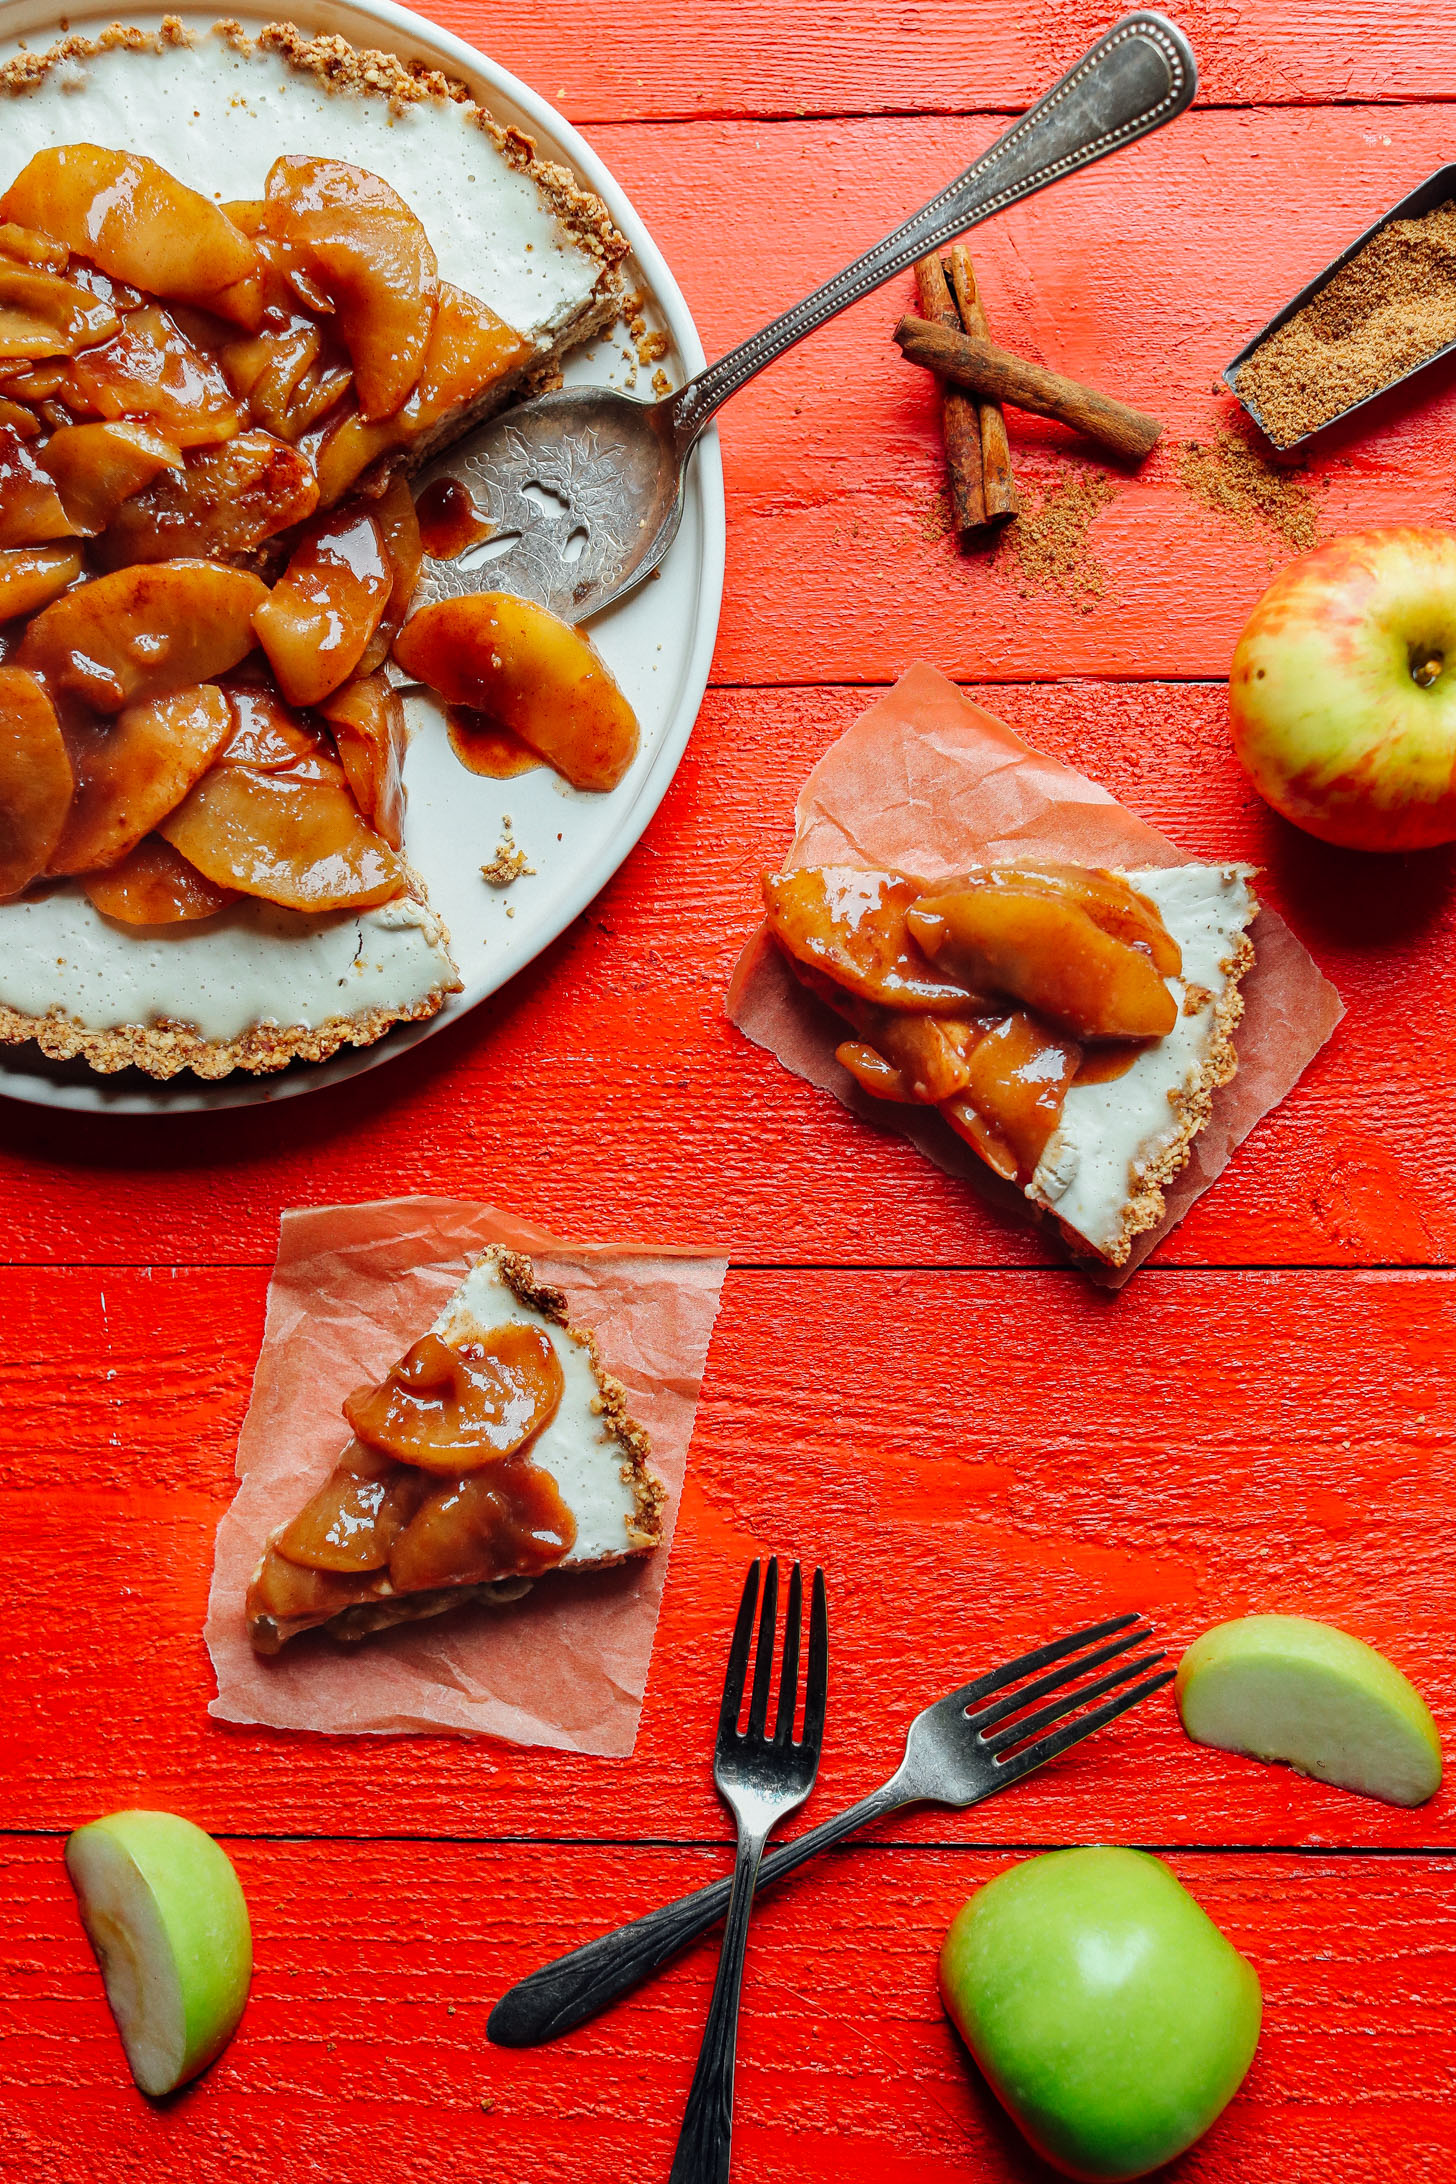 Slices of gluten-free, vegan Caramel Apple Tart on squares of parchment paper